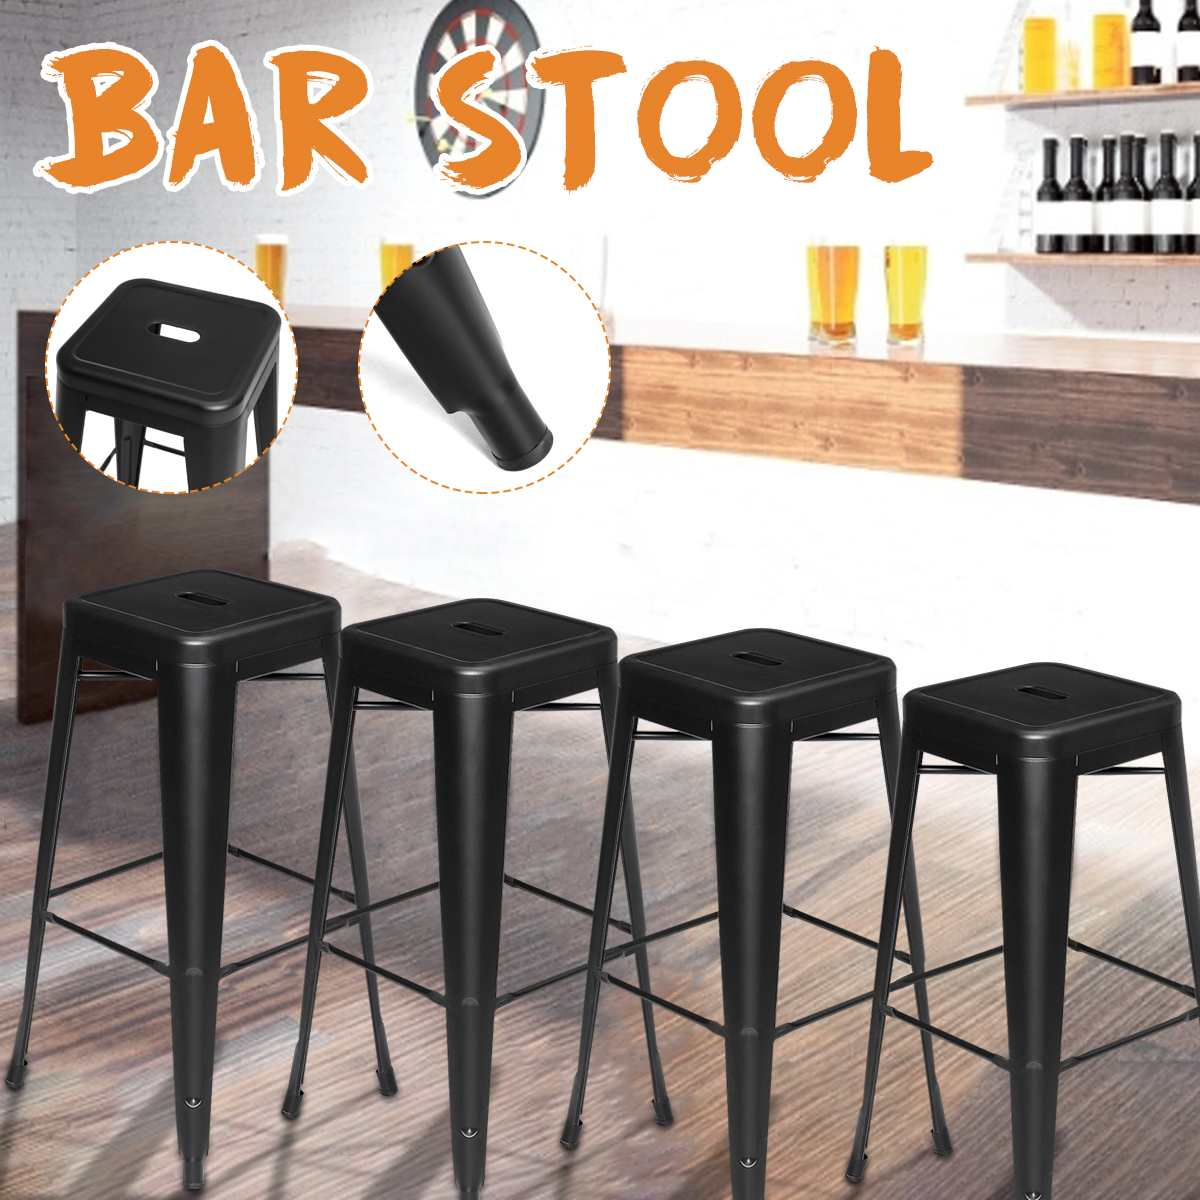 New 1.8 X 11.8'' PCS Black Metal Nordic Bar Stool Modern Wrought Iron Bar Chair High Stool Dining Chair For Bar Home Kitchen